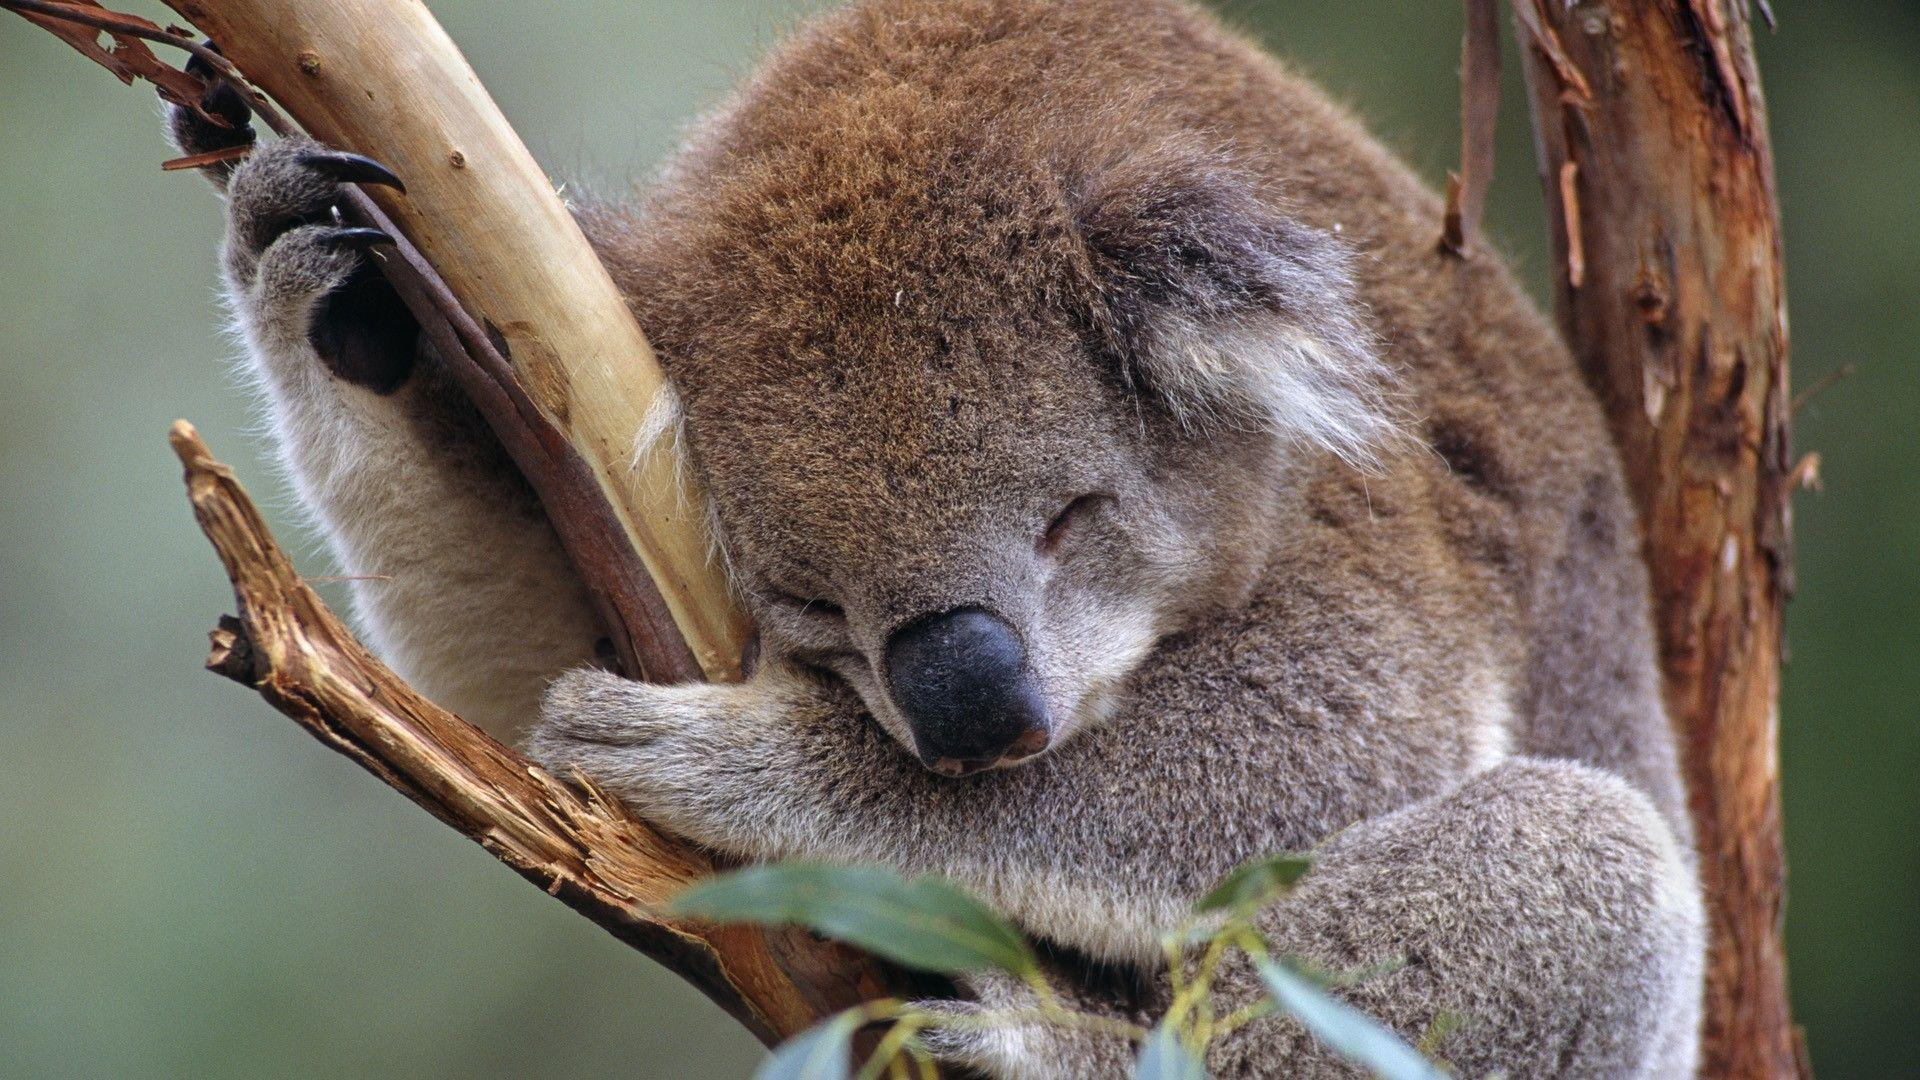 Wallpaper – Koala Cuteness | PicPetz